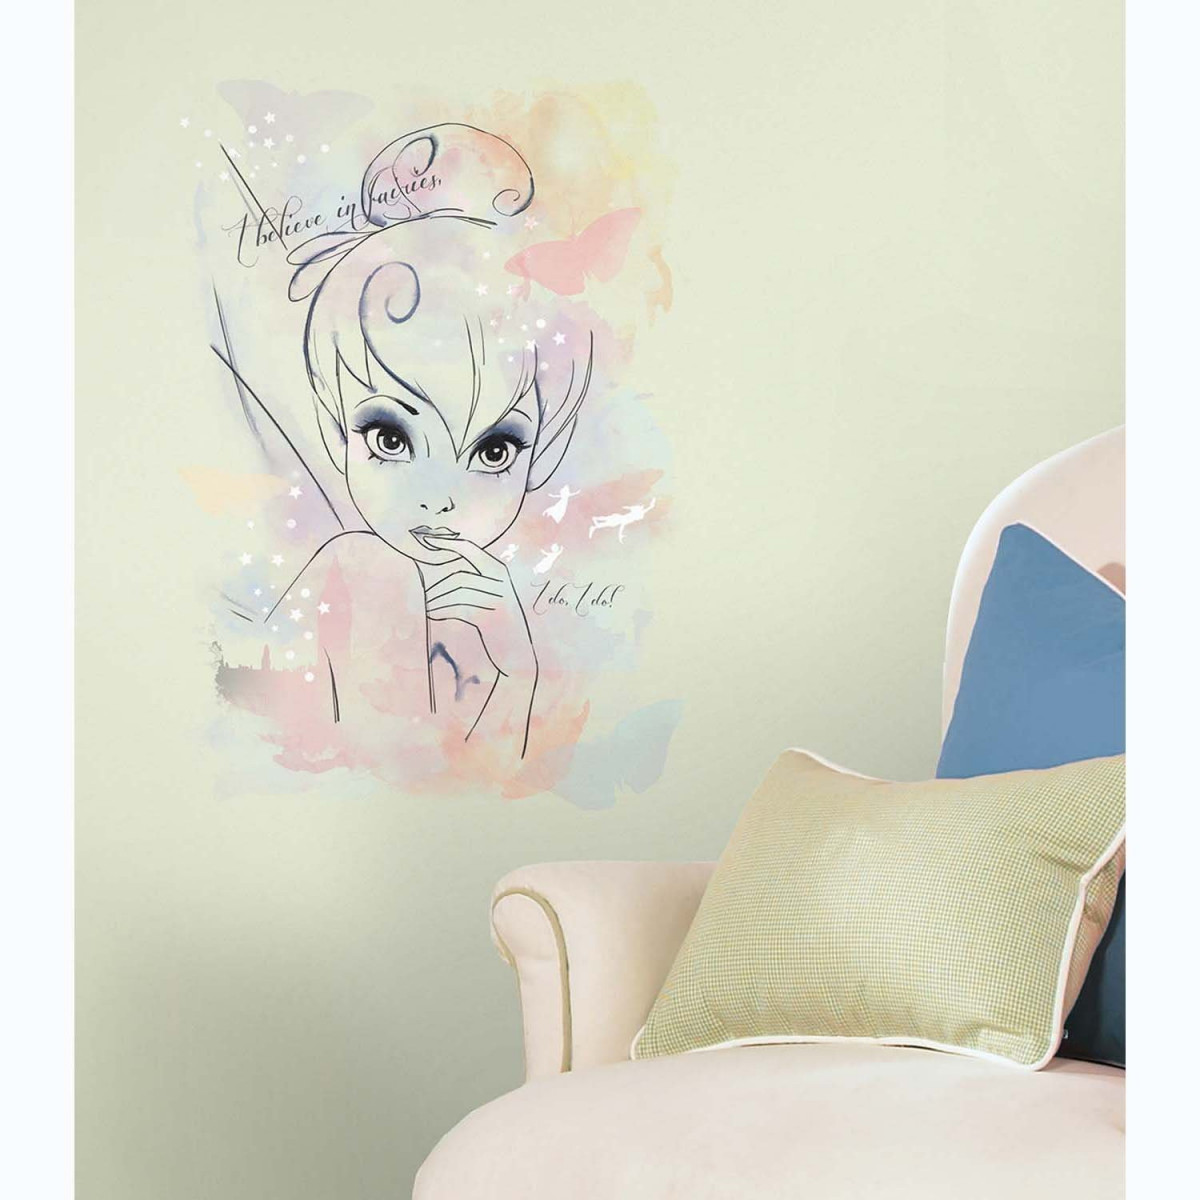 Stickers géant I believe in fairies Fée Clochette Disney Fairies